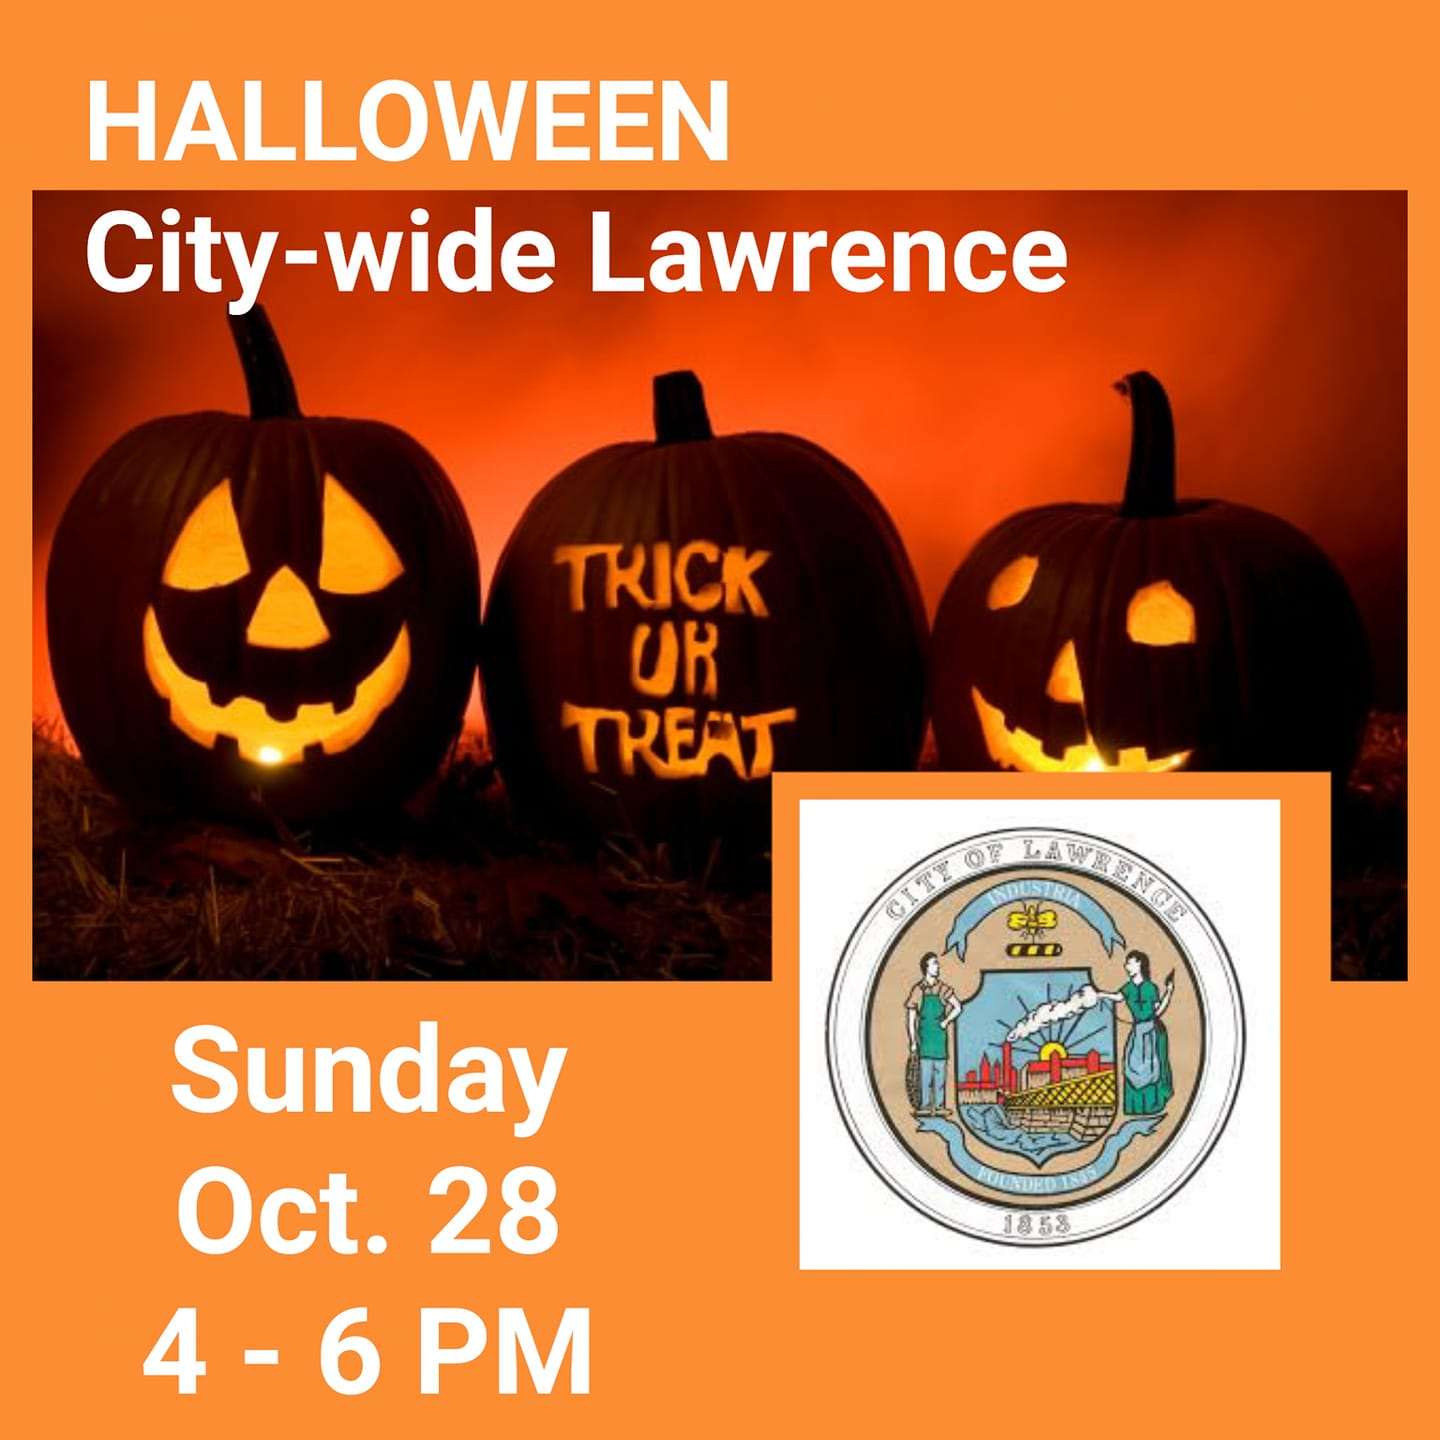 Lawrence Ma Halloween Treat Or Trick 2020 Lawrence, MA